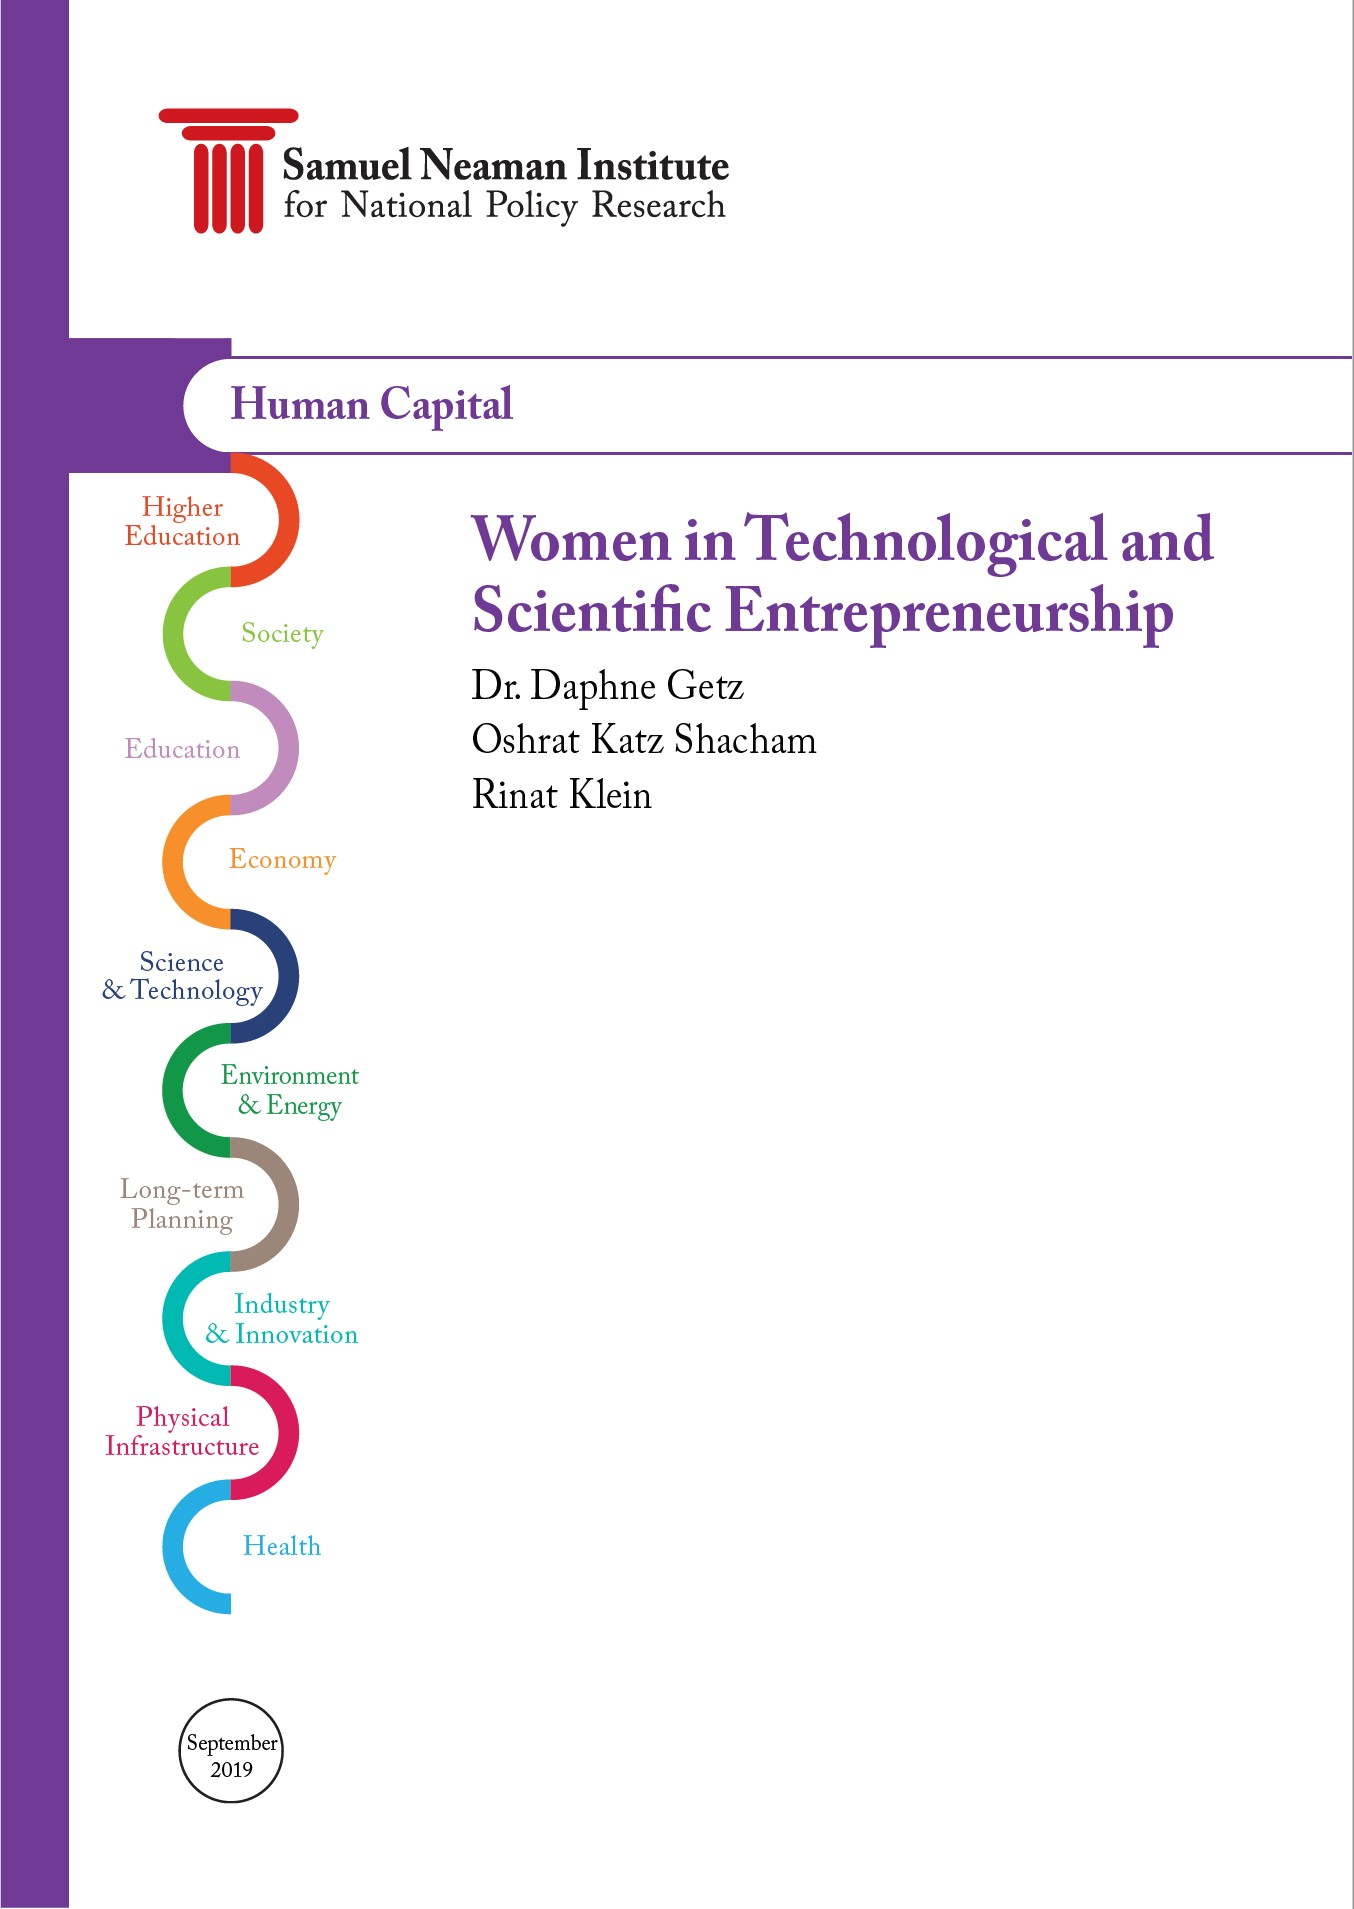 Women in Technological and Scientific Entrepreneurship